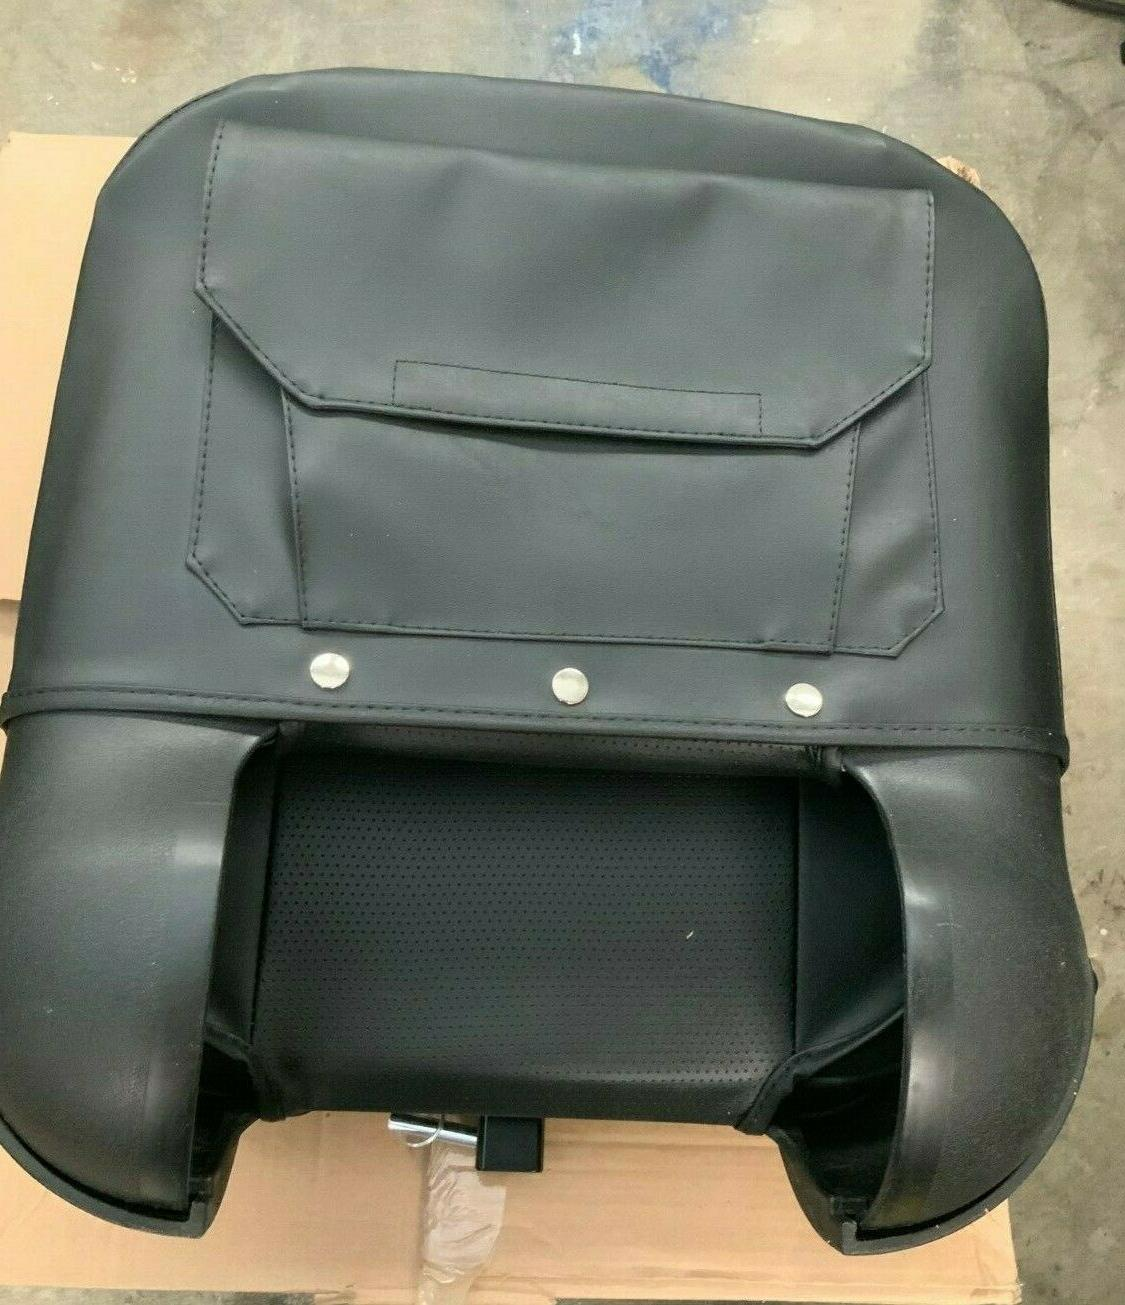 New seat part number 151005